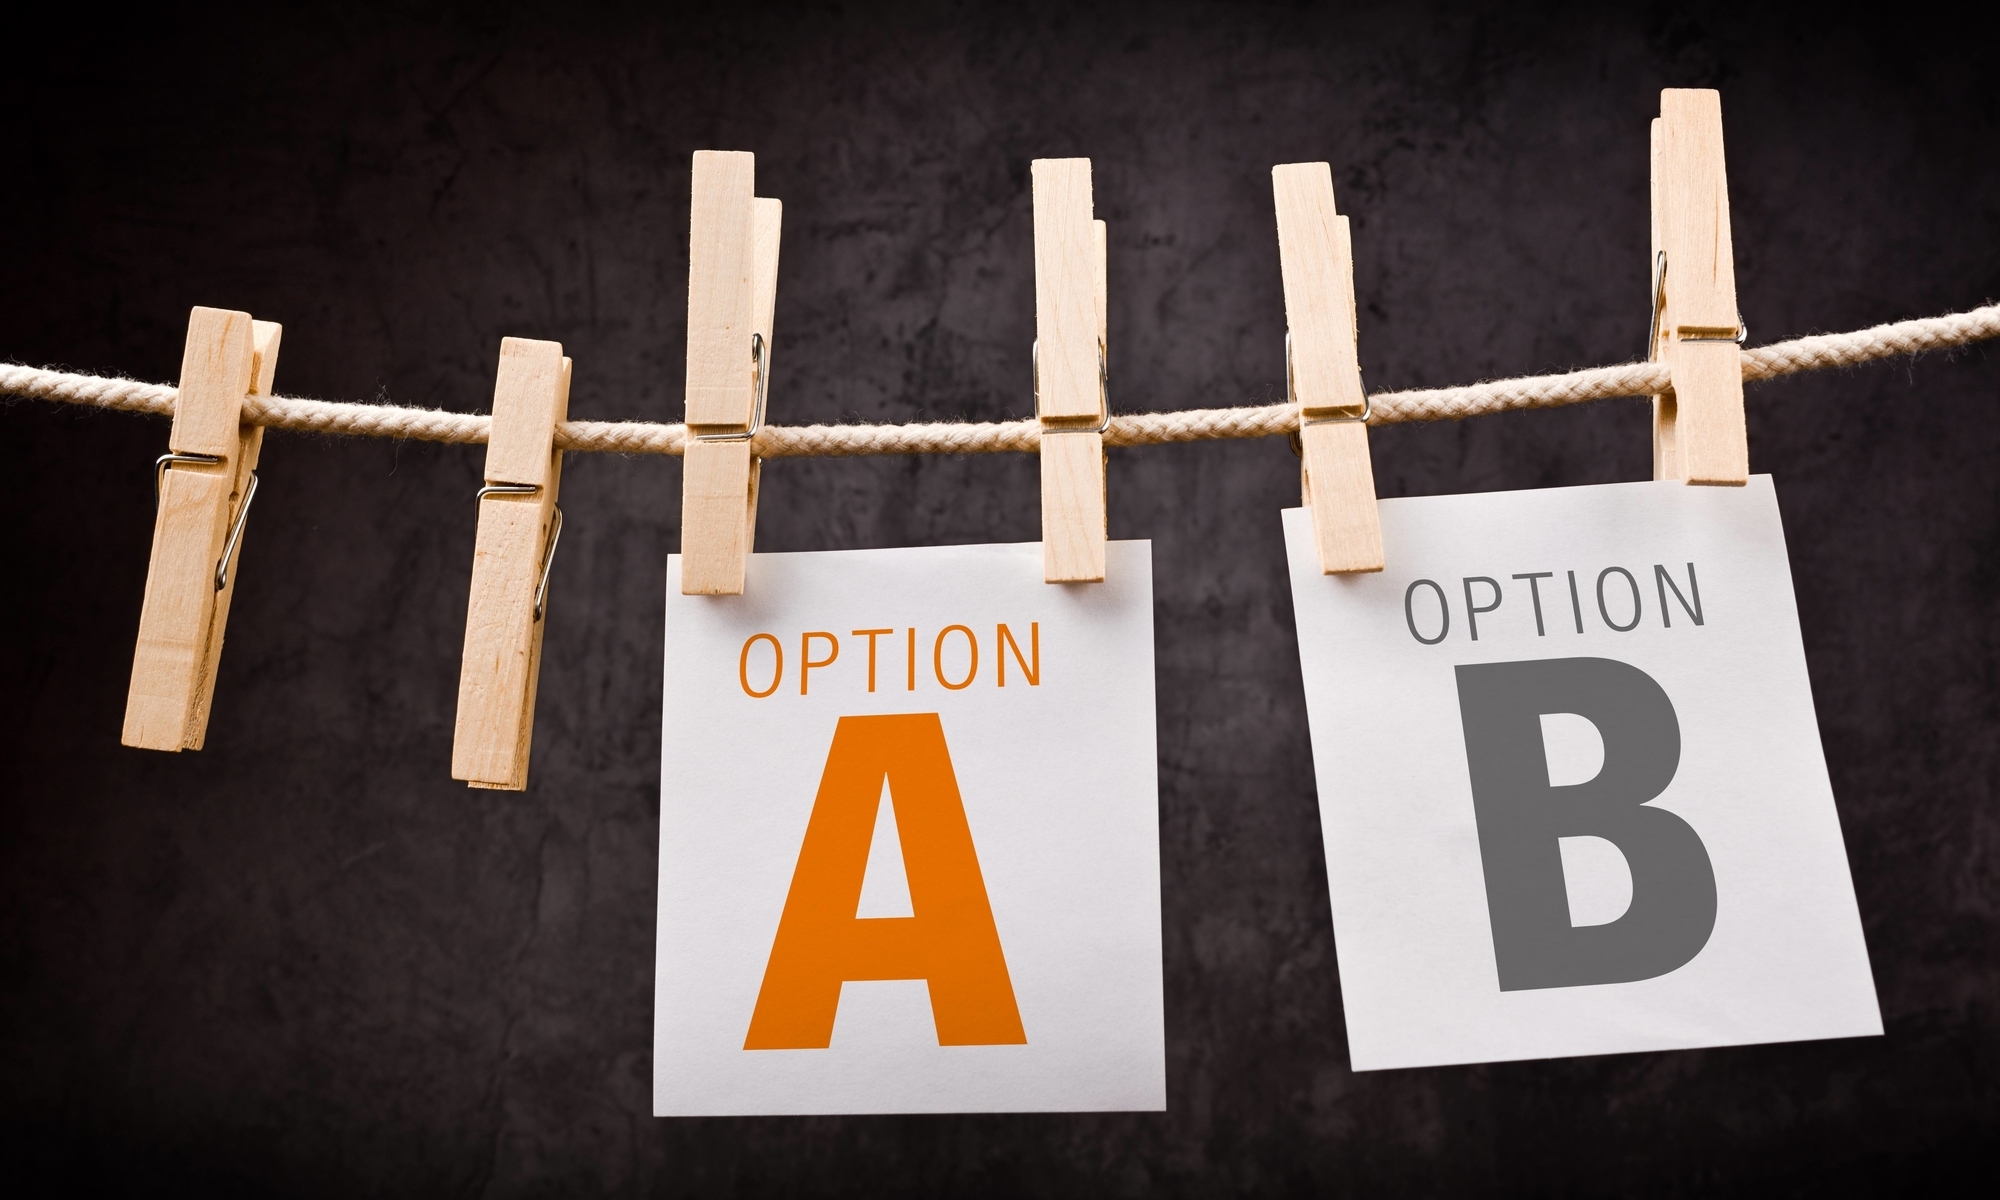 Concept of choice between two options marked as A and B. Letters are printed on note paper and attached to rope with clothes pins.